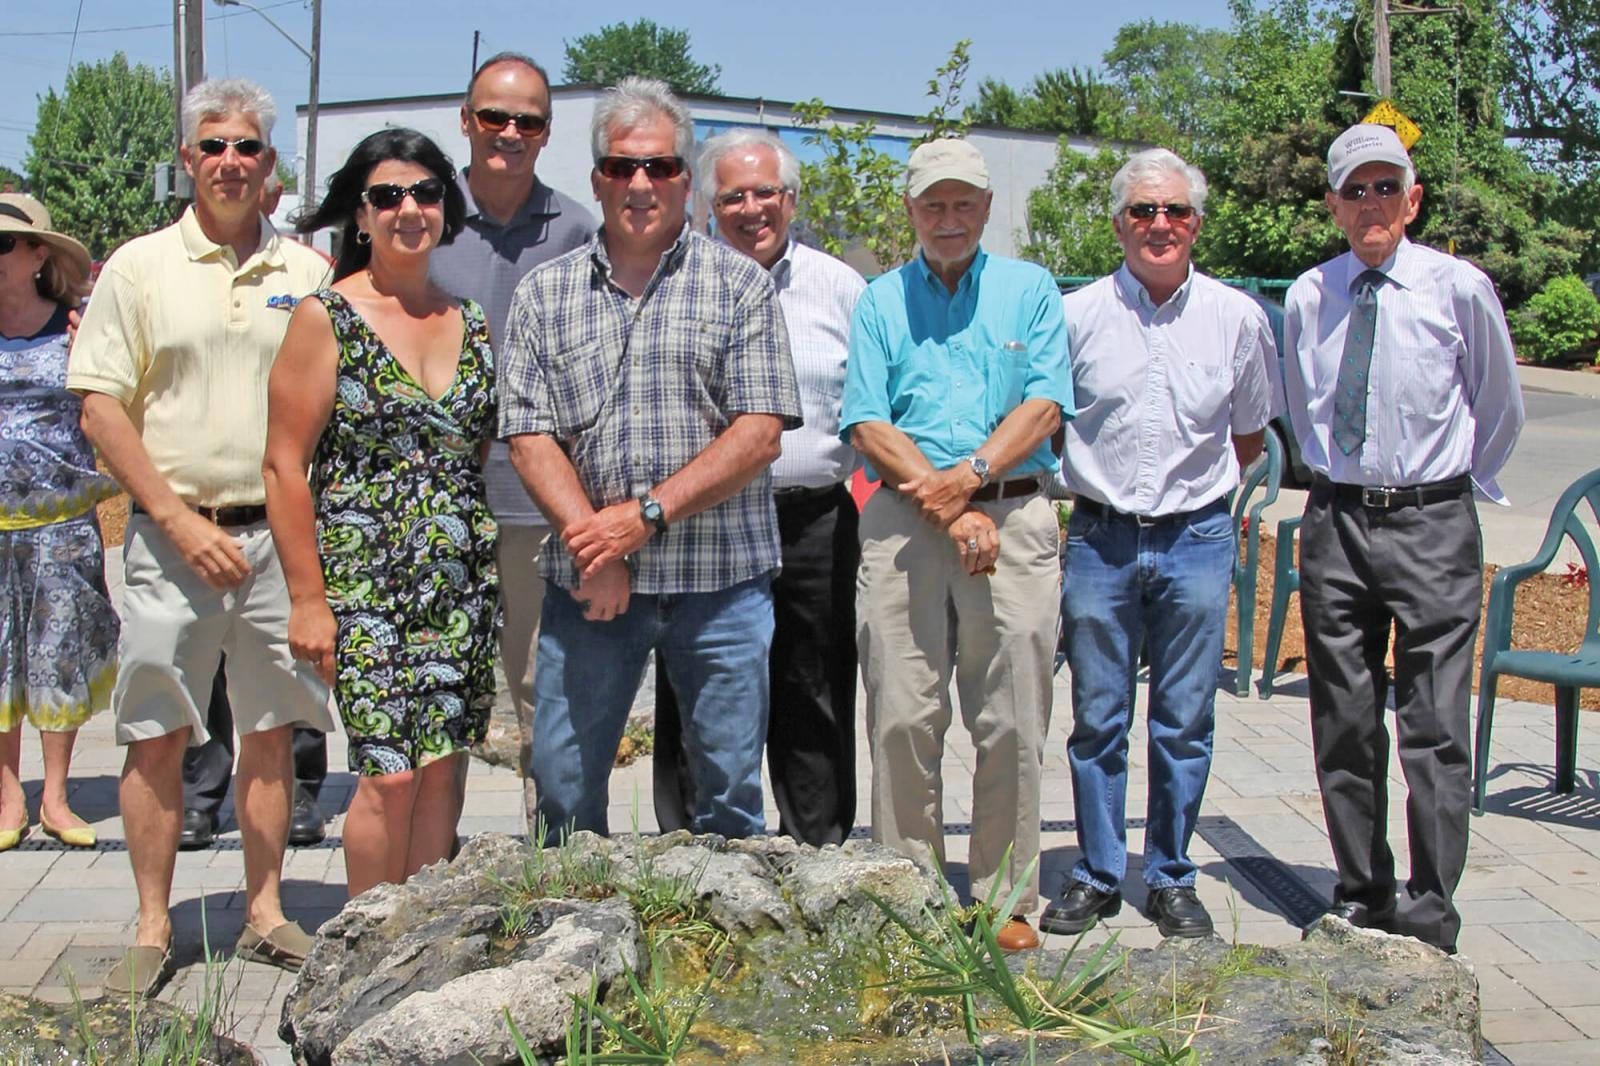 Perry Molema garden opens to the public